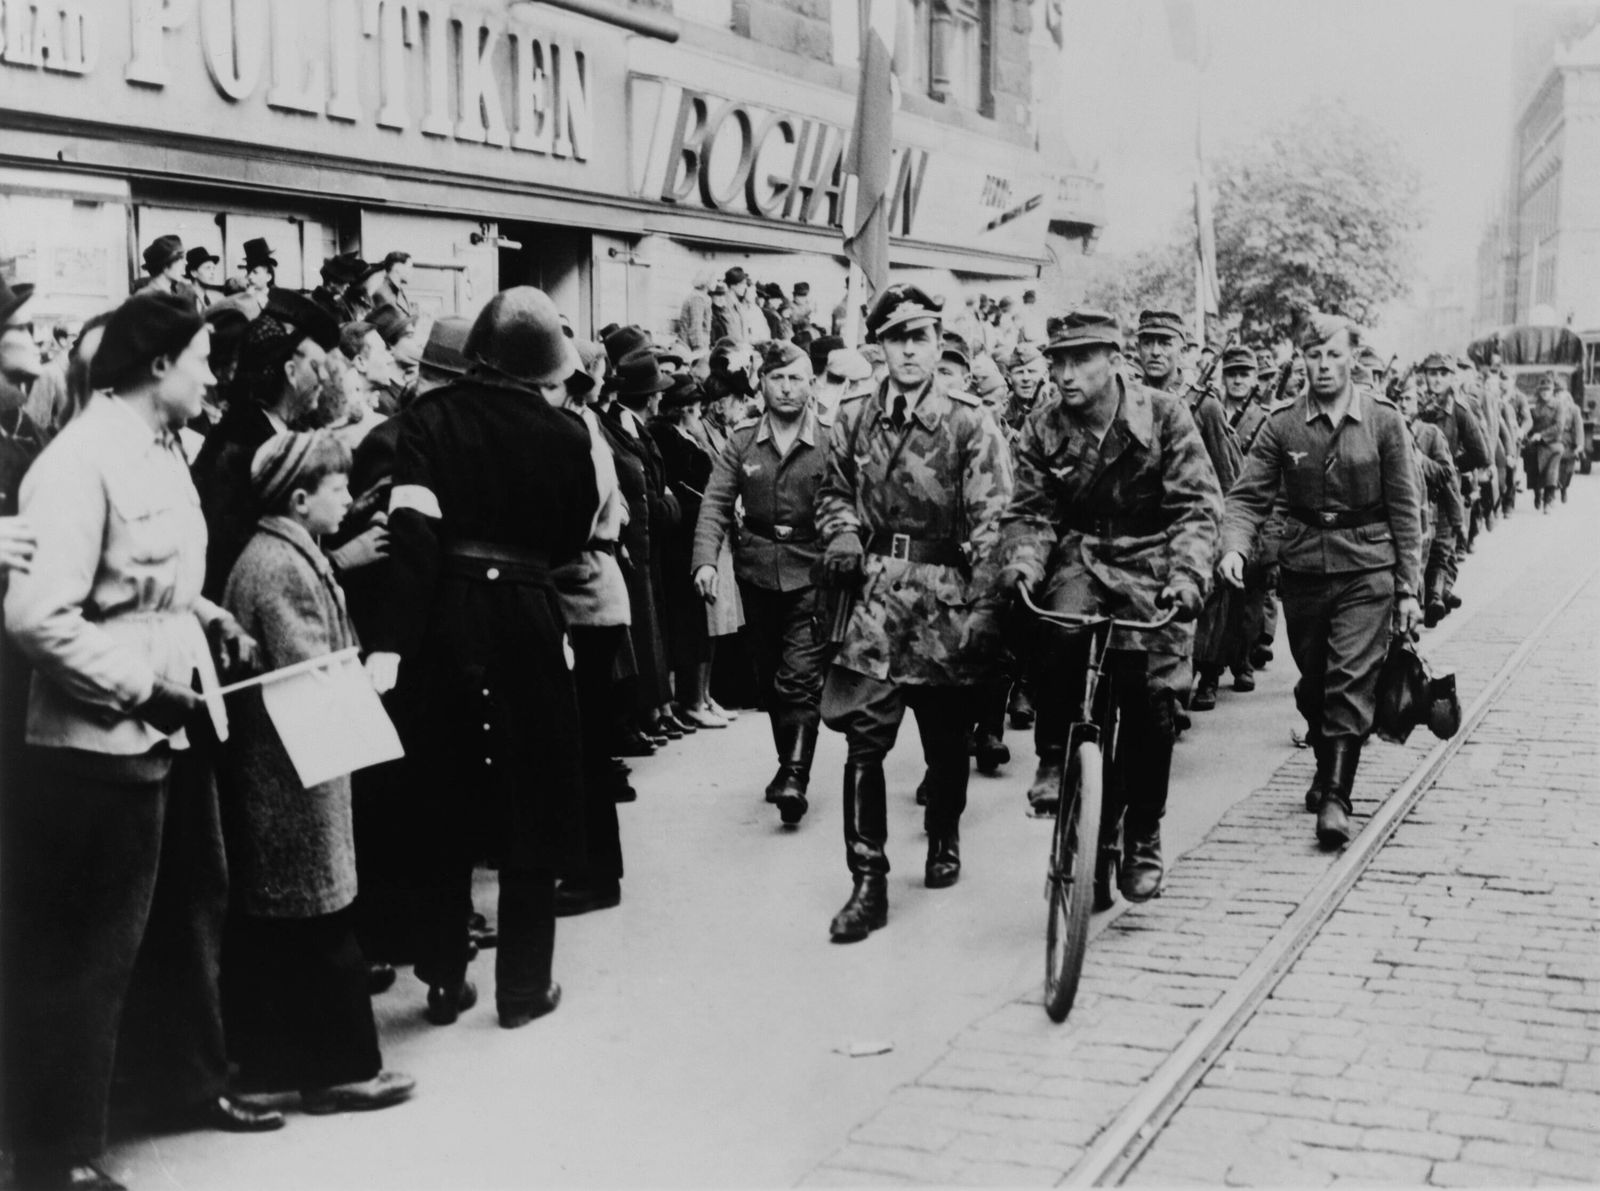 Nazi soldiers march down a commercial street in German-occupied Denmark in 1945. Denmark was one of the last occupied co